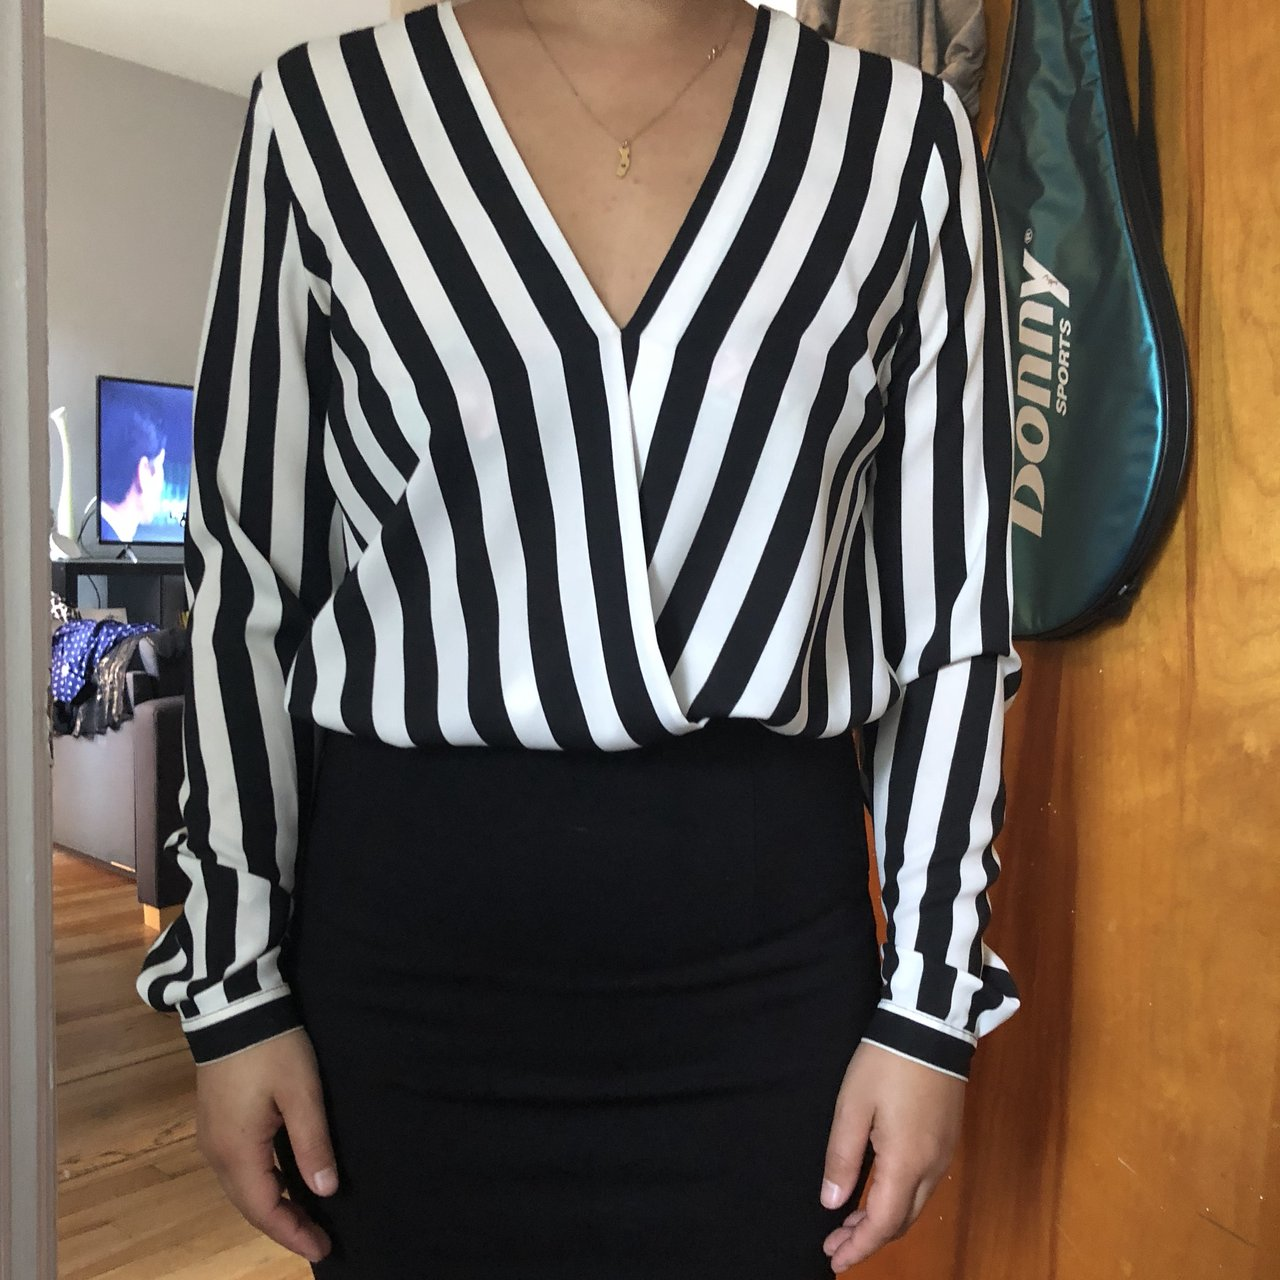 e2ba8efe5b Black and white stripes top with black skirt attached. It's - Depop